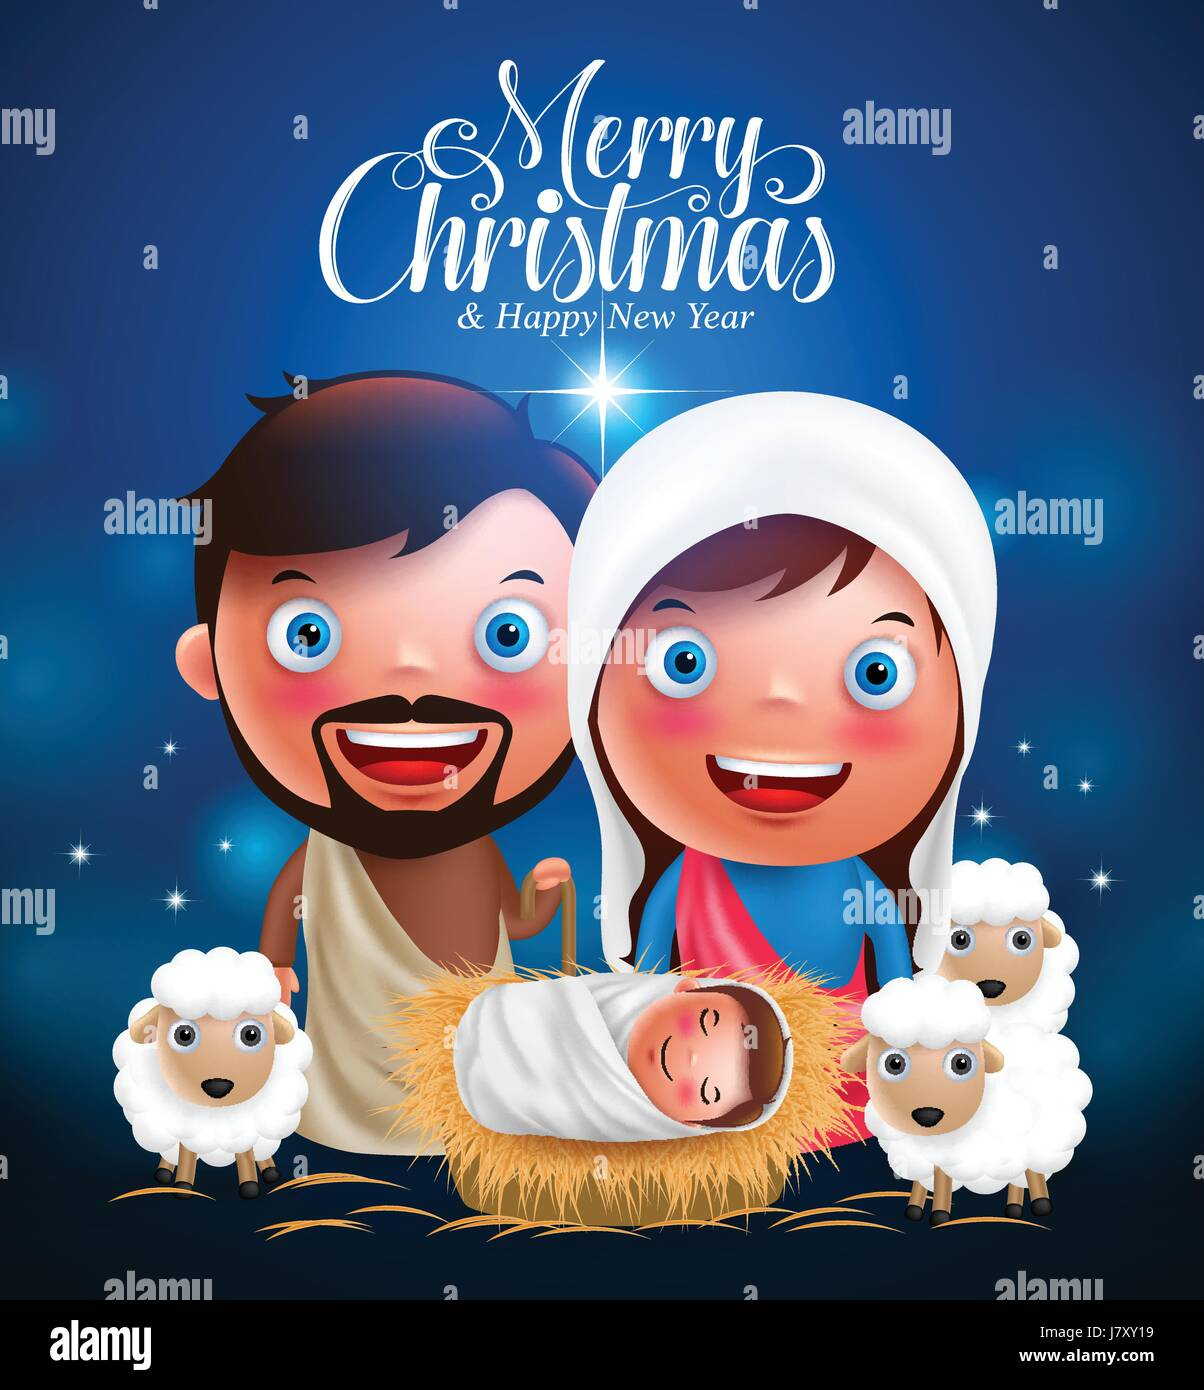 Merry Christmas Greetings With Jesus Born In Manger Belen With